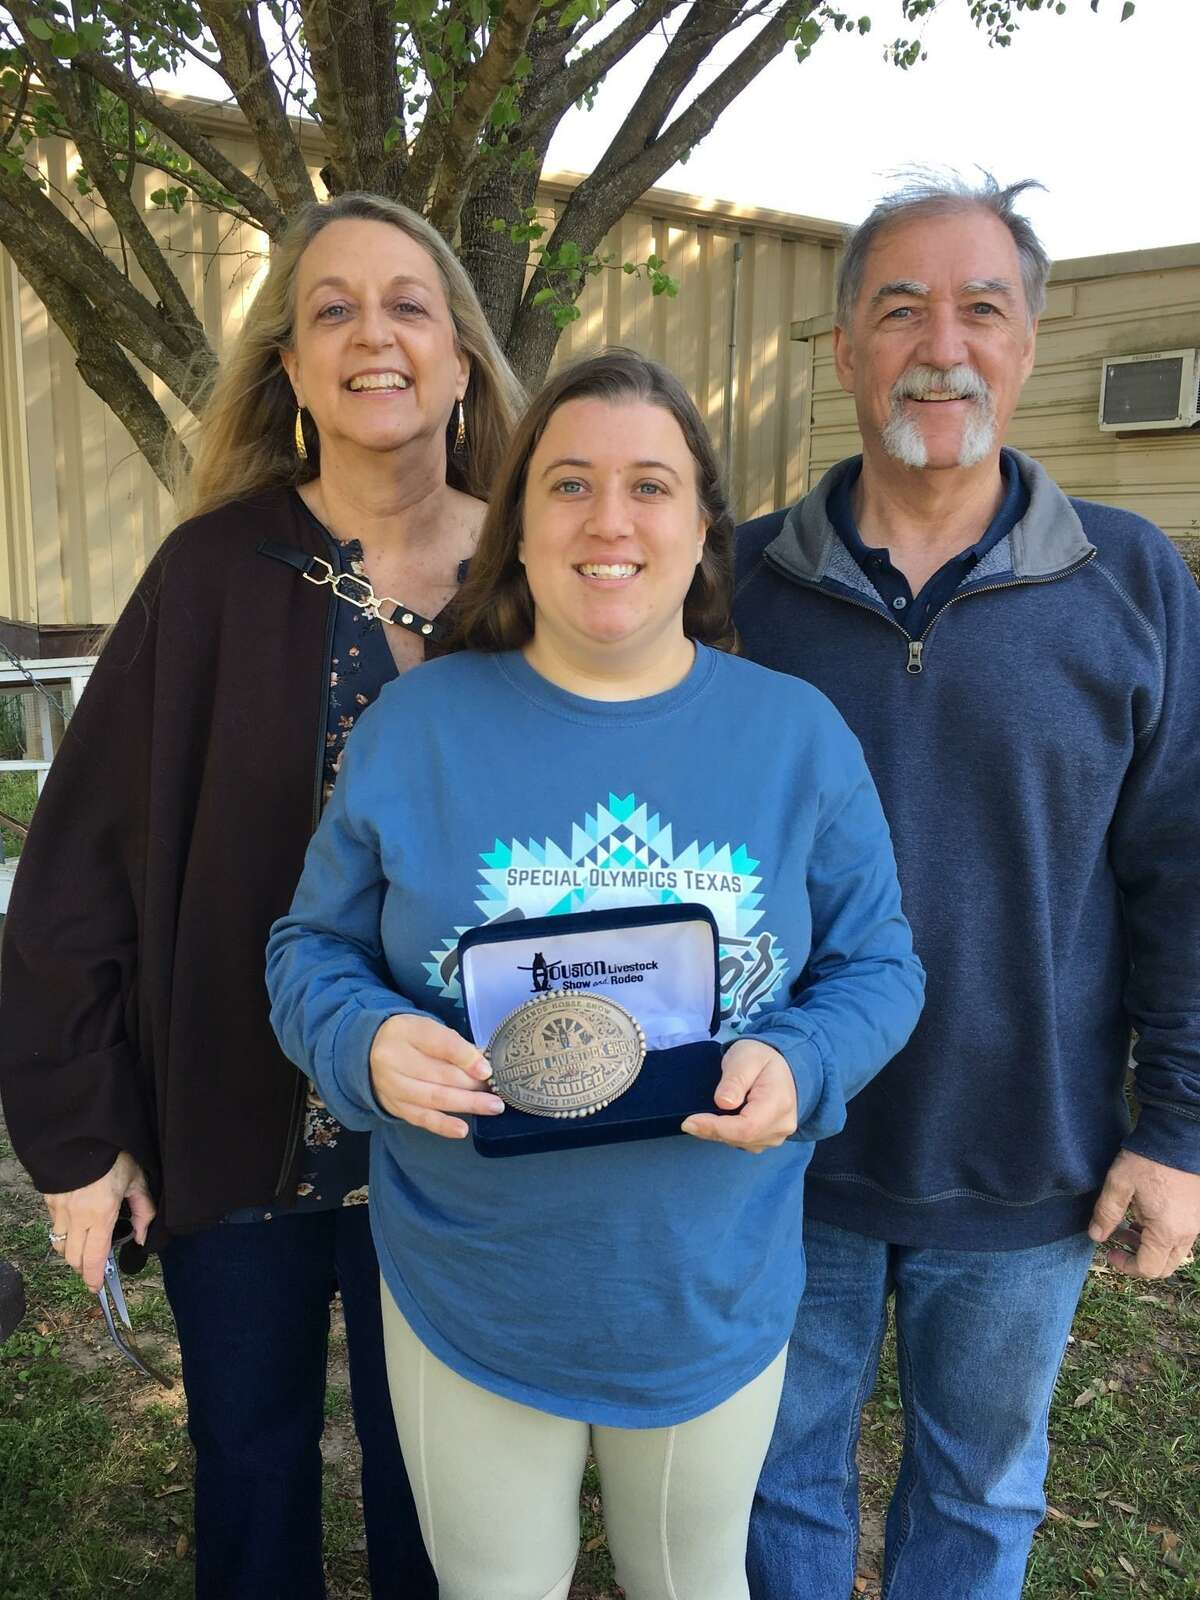 Shelby Day won a belt buckle at this year's Top Hands Horse Show offered by the Houston Livestock Show & Rodeo forfirst place in English equitation.She won trophies for fifth place in trail riding and sixth place in showmanship at halter. Her parents are Kari and Steve Day.